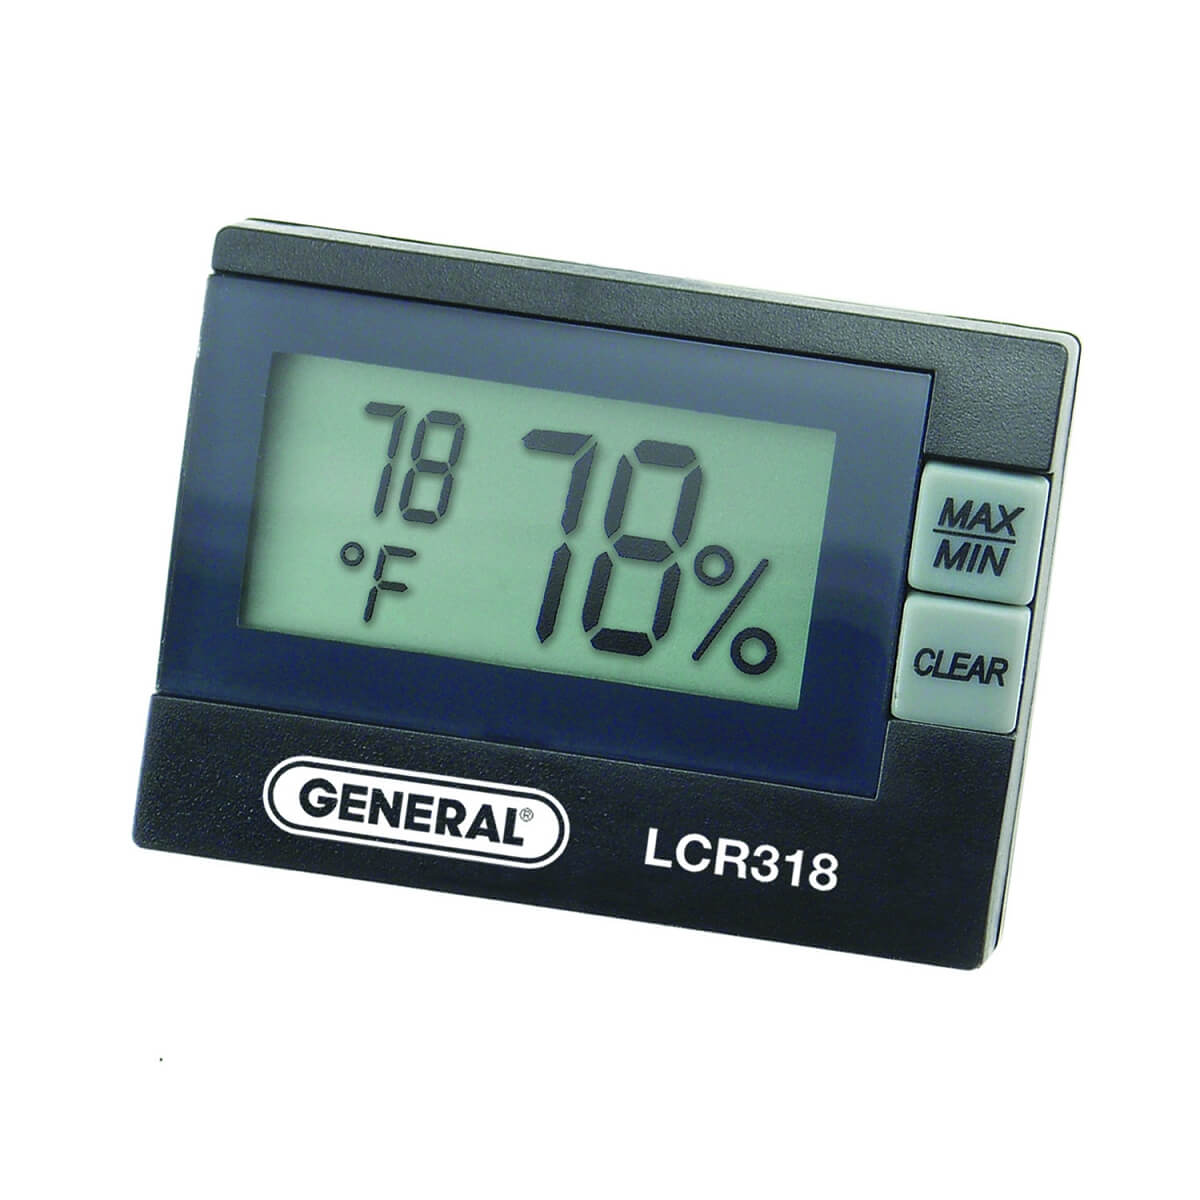 General Tools LCR318 Digital Relative Humidity and Temperature Meter